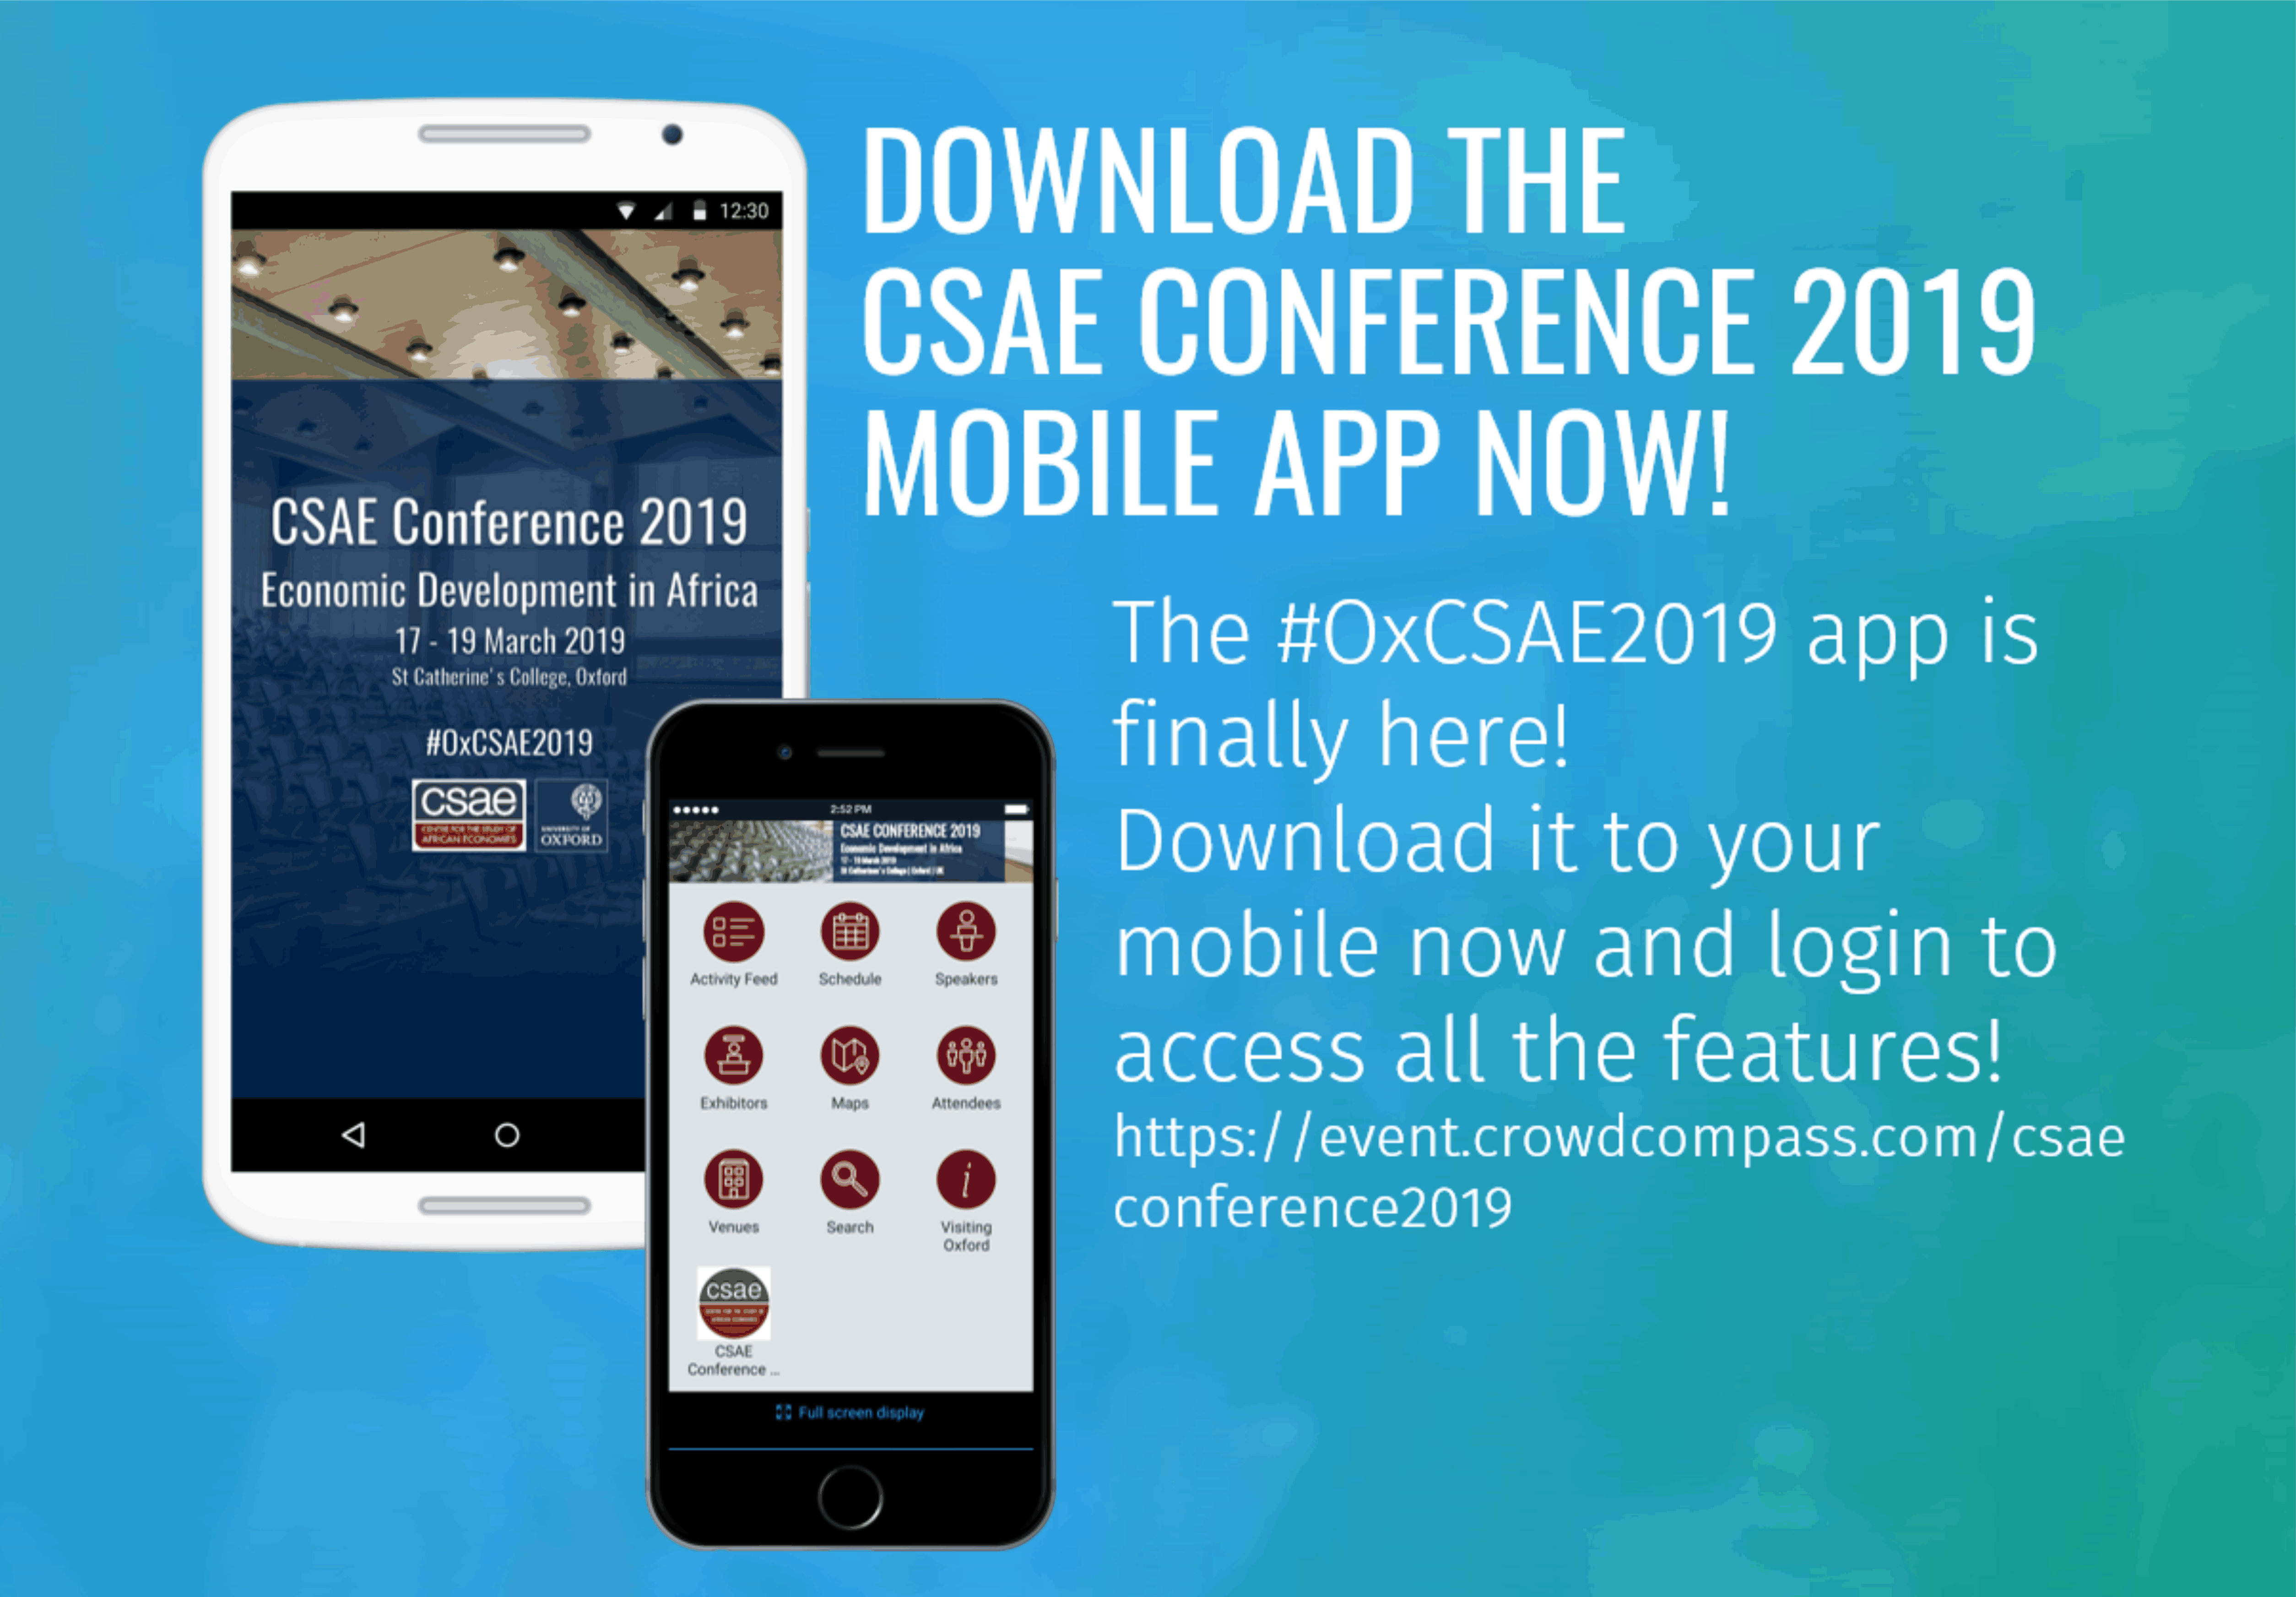 CSAE App download now